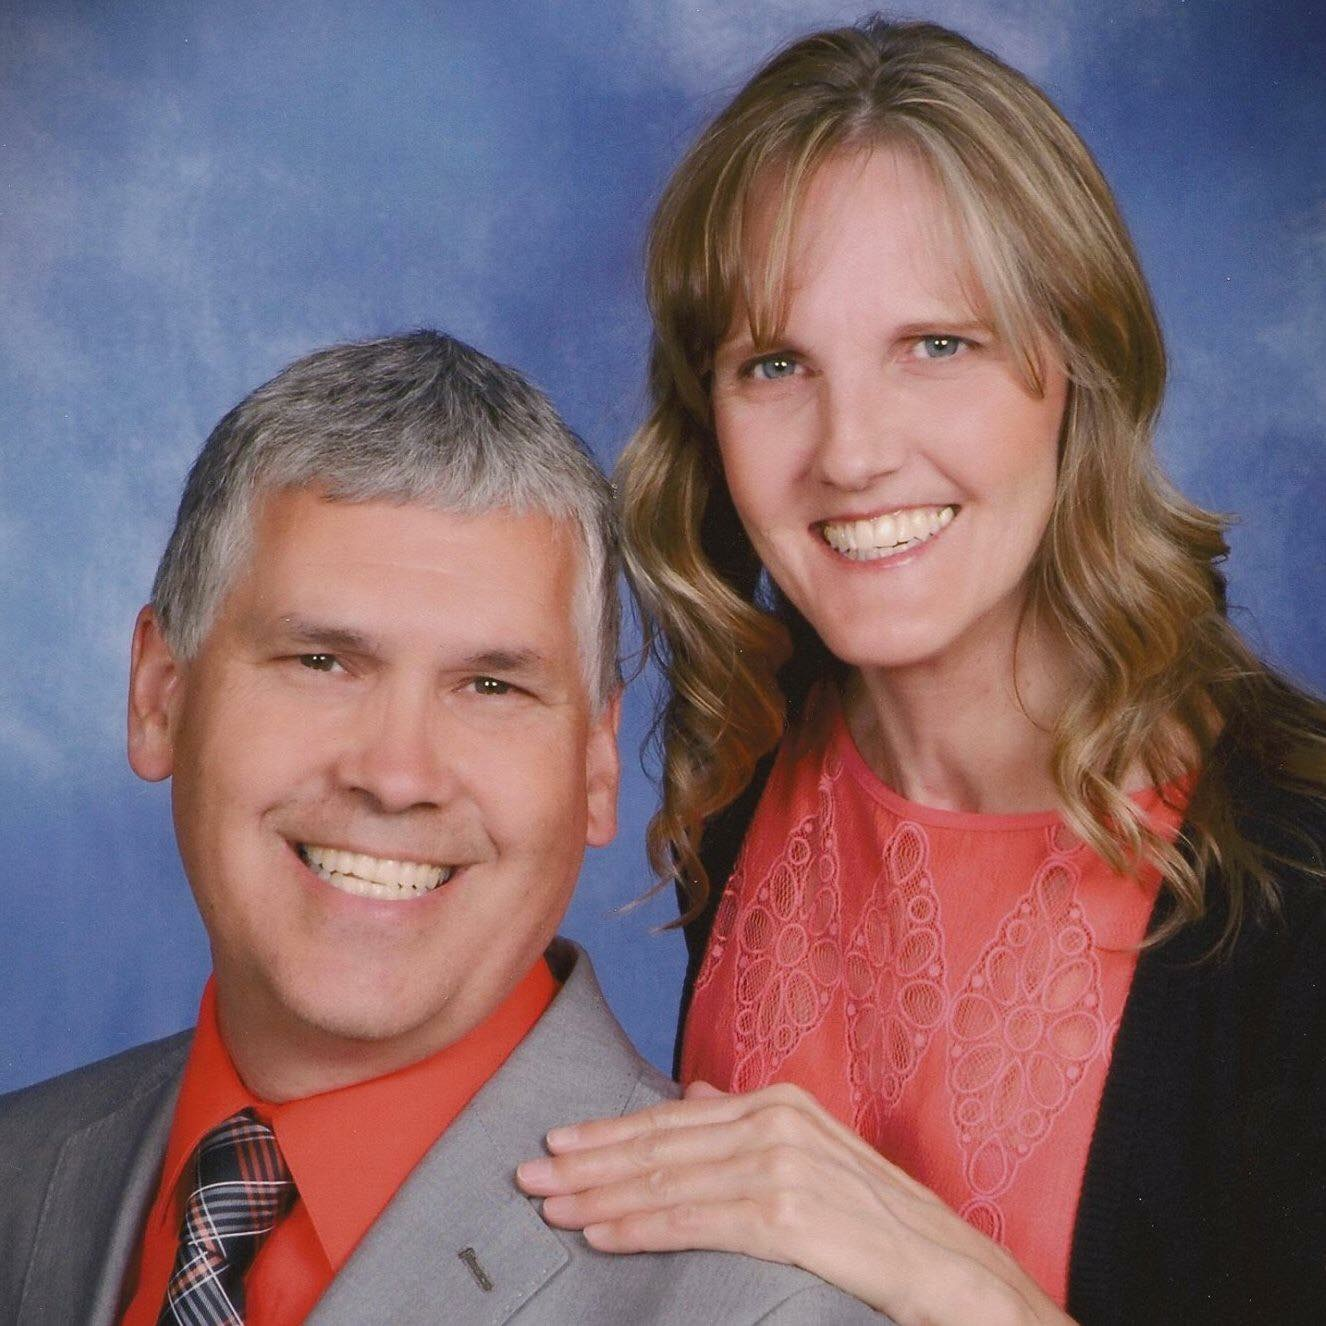 Randy Prewitt DDS with wife Heidi